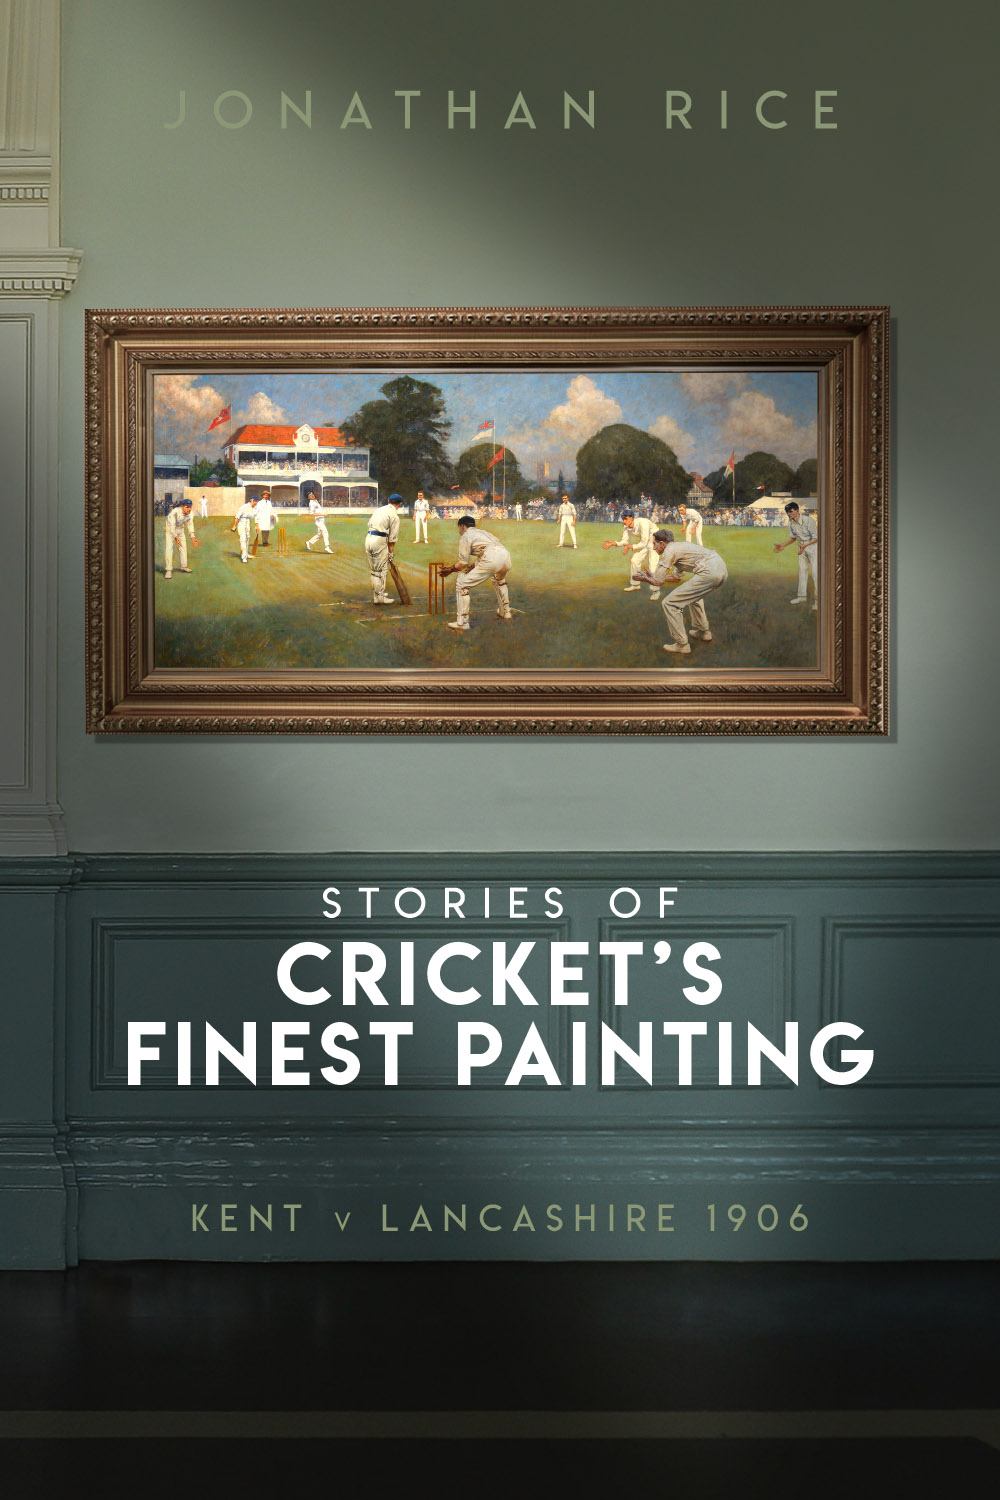 Stories of Cricket's Finest Painting